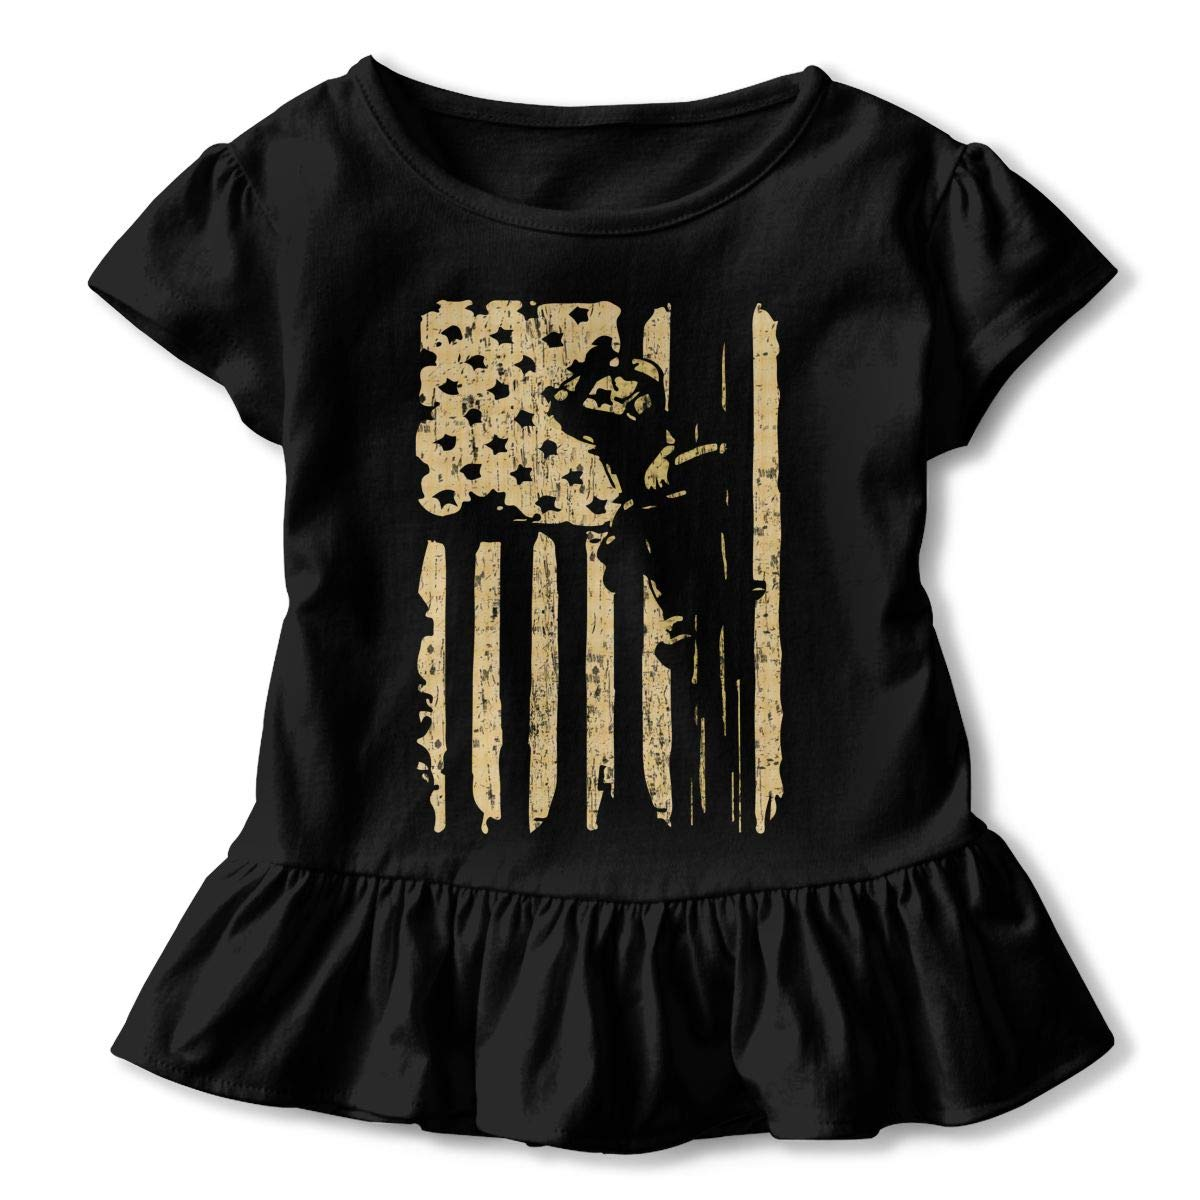 Cheng Jian Bo Lineman US Flag Gift Toddler Girls T Shirt Kids Cotton Short Sleeve Ruffle Tee